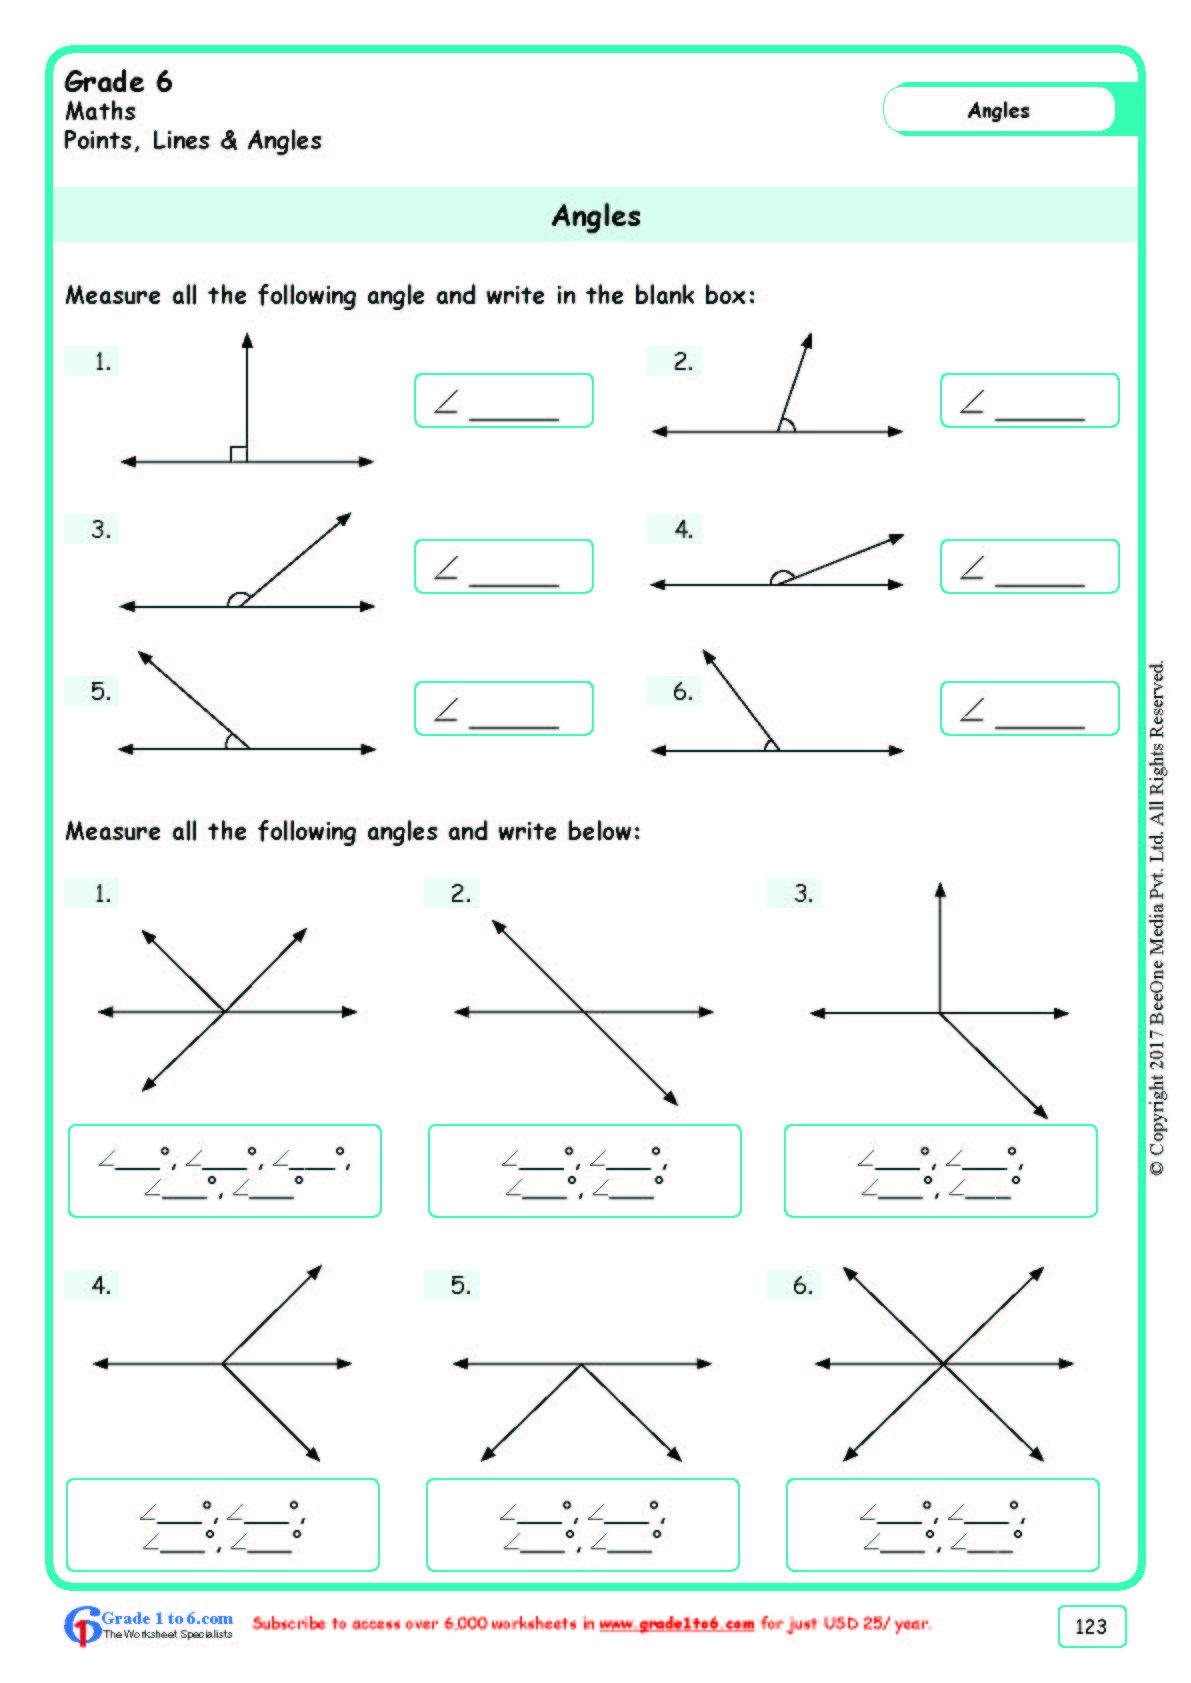 Worksheet Grade 6 Math Angles In